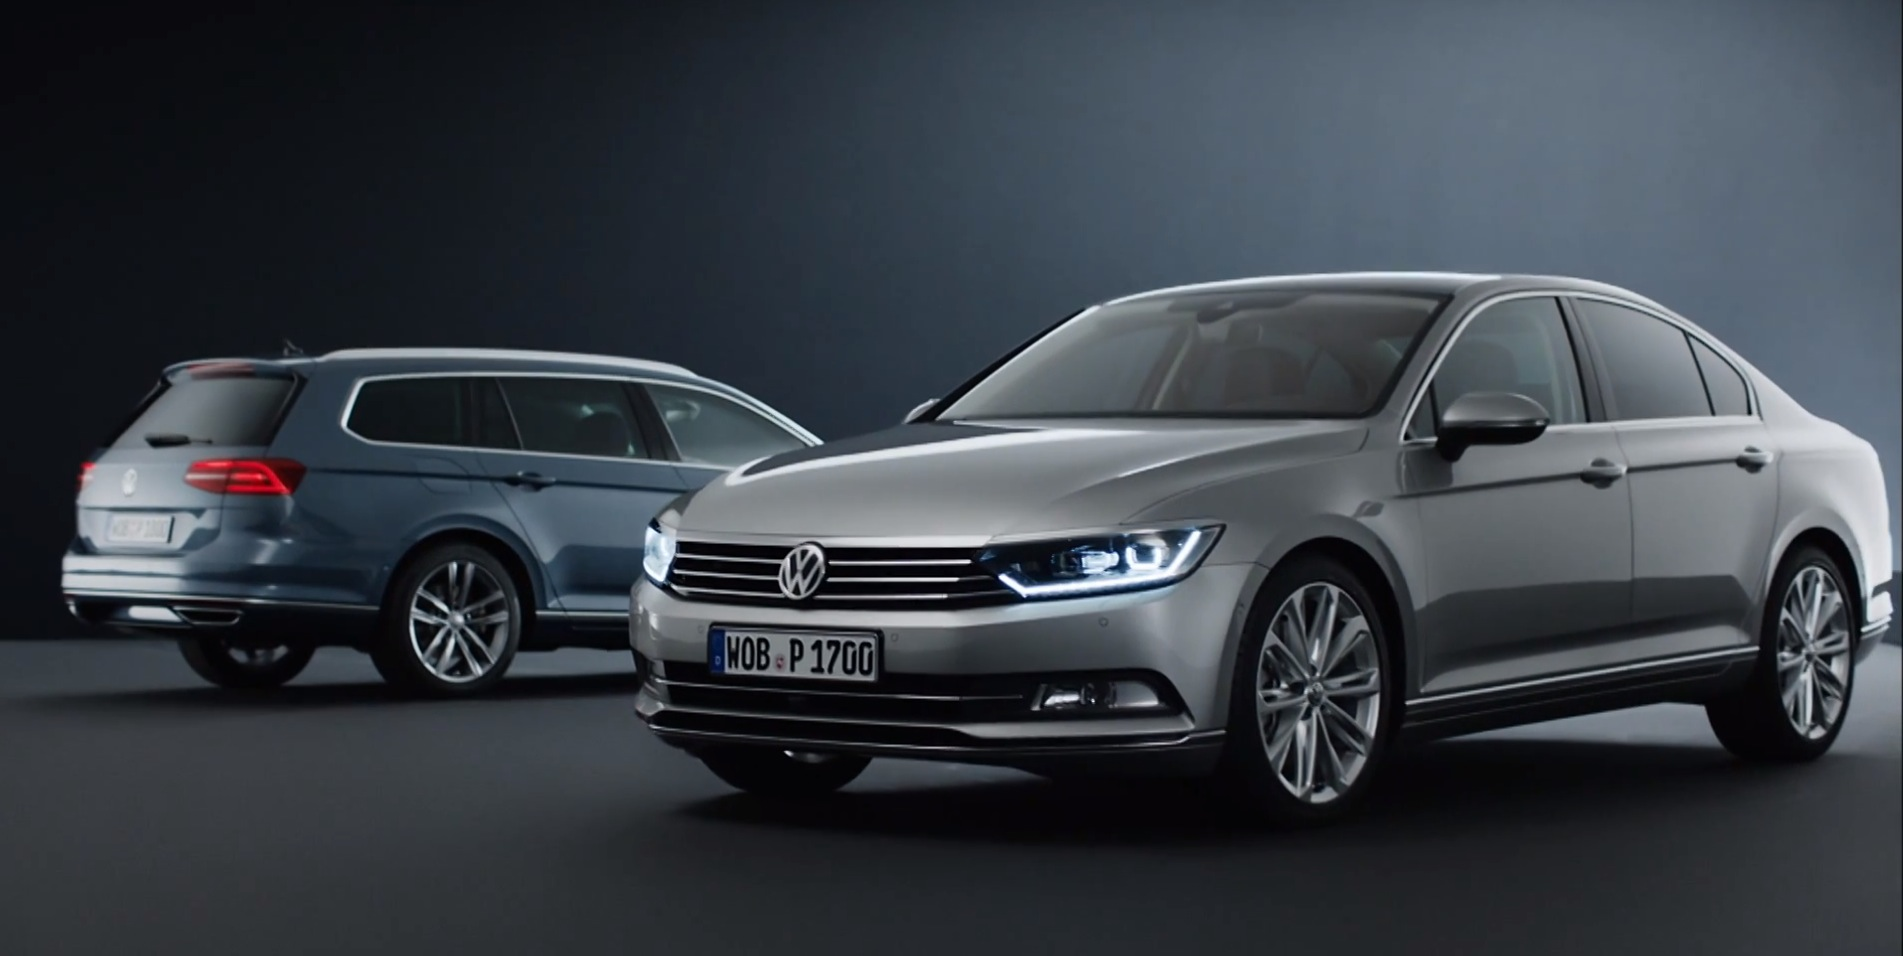 all new volkswagen passat sedan and wagon design takes center stage in first videos autoevolution. Black Bedroom Furniture Sets. Home Design Ideas